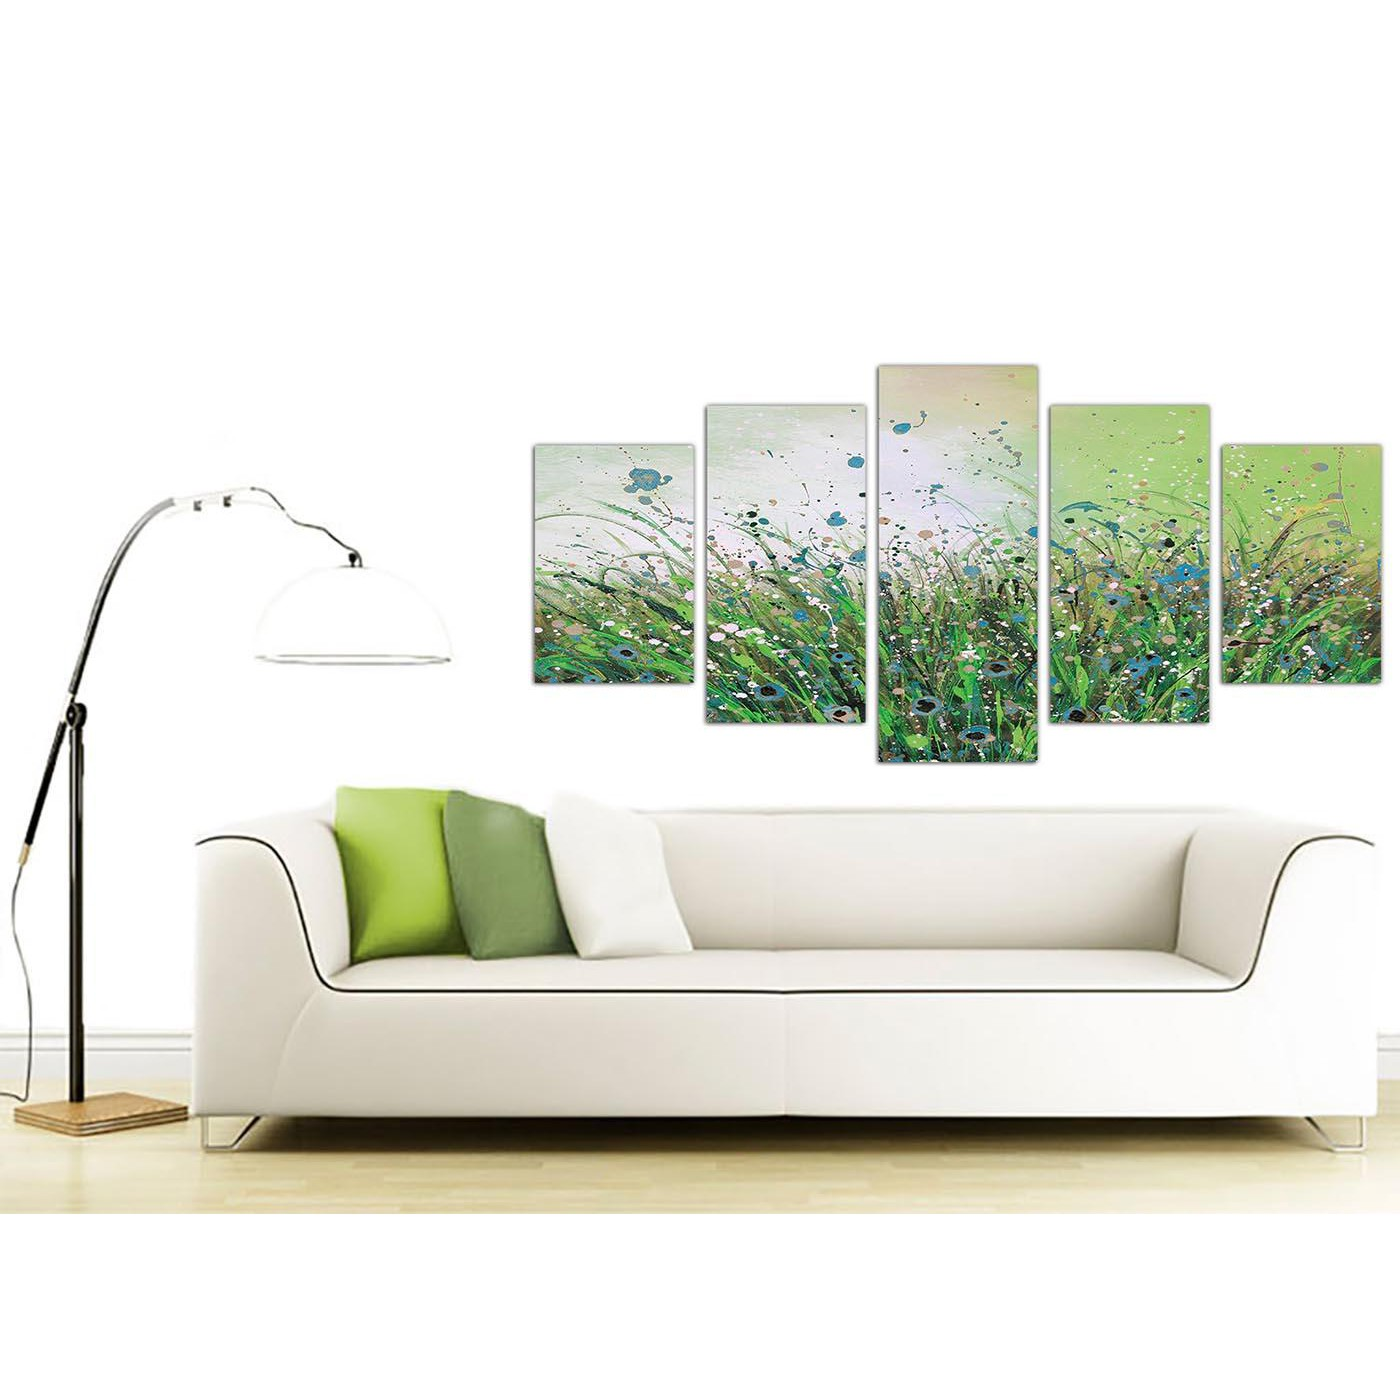 Large Art For Living Room Uk: Extra Large Floral Abstract Canvas Wall Art In Green